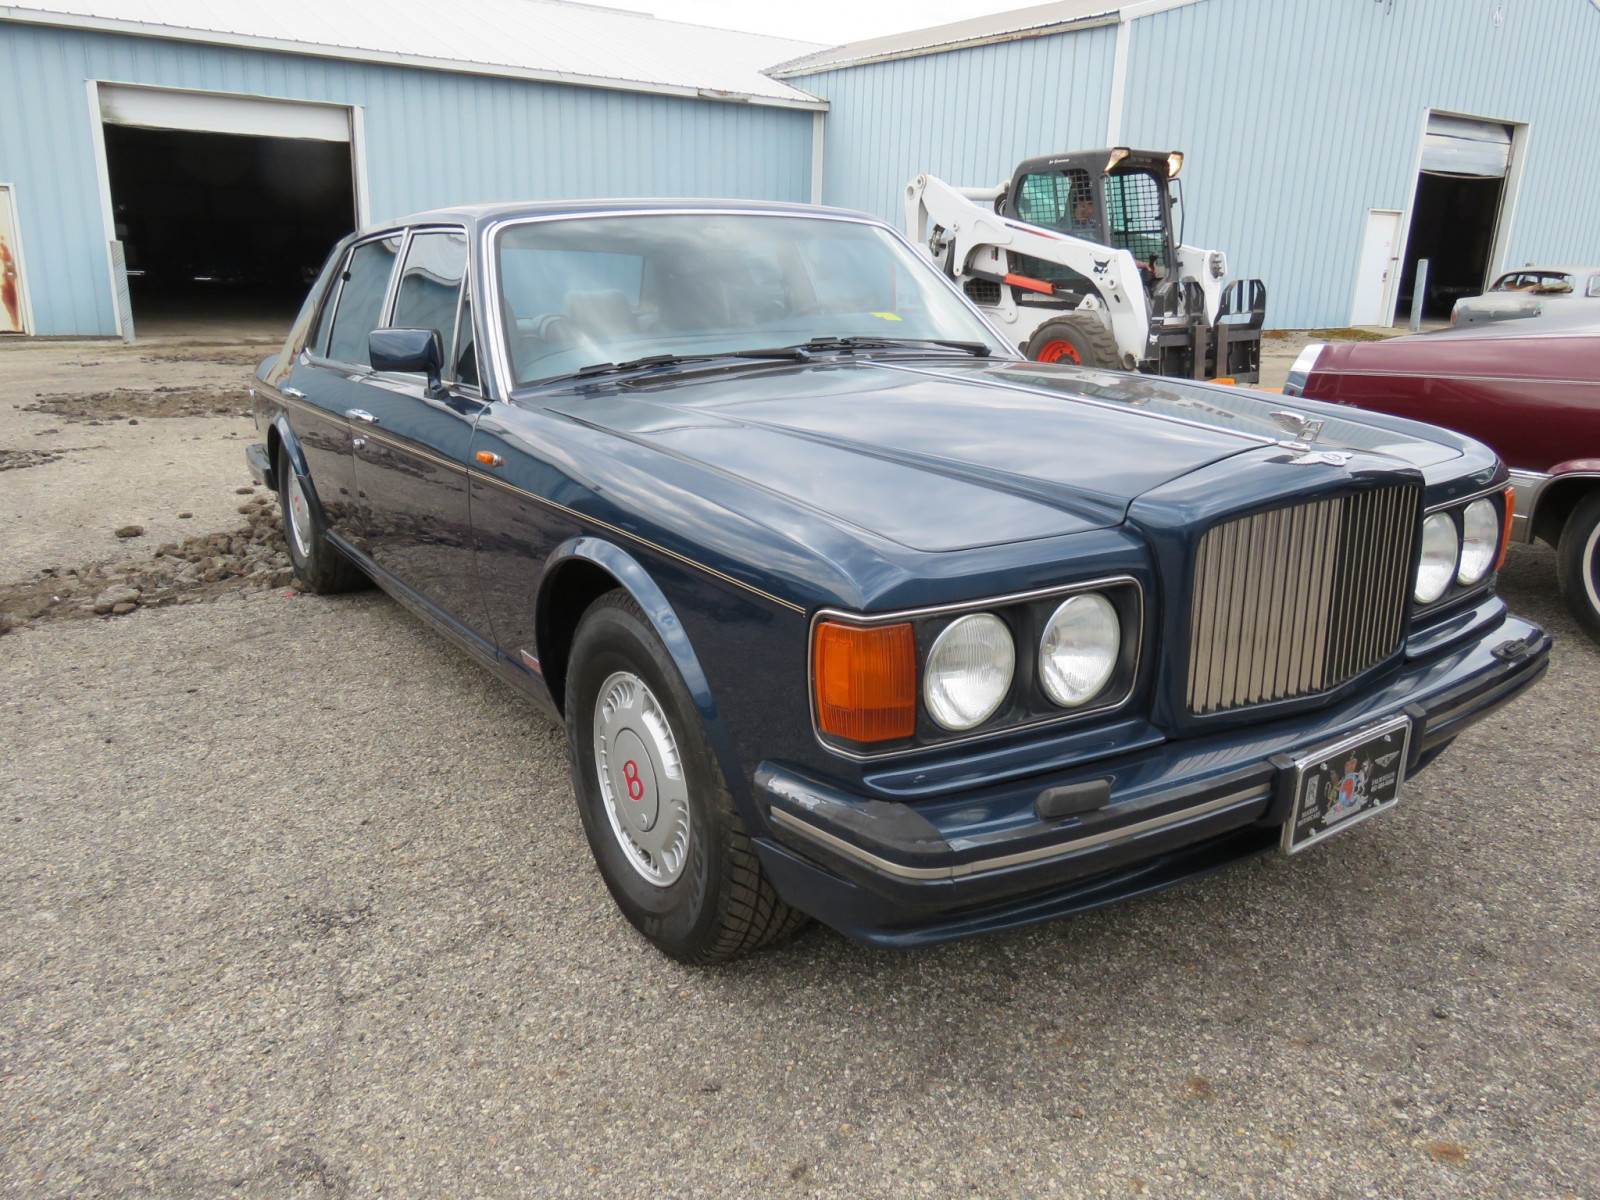 1988 Bentley Turbo R 4dr Sedan - Image 3